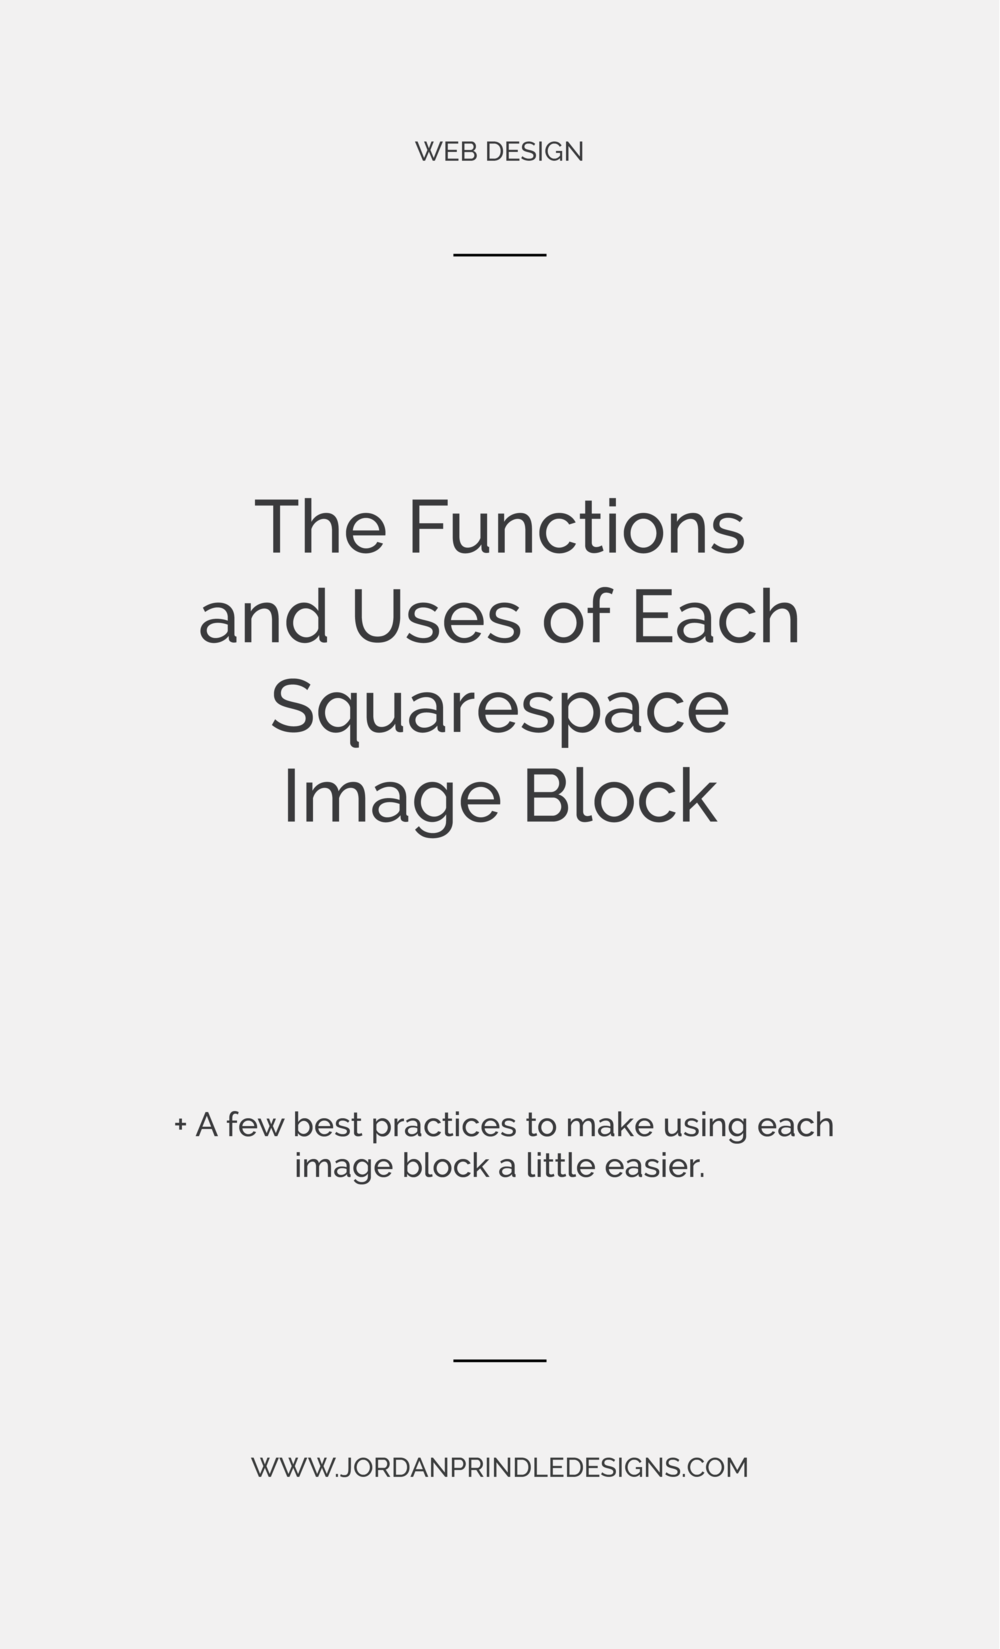 The Functions and Uses of Each Squarespace Image Block | Squarespace tip of the day: how and when to actualy use the six squarespace image blocks. Read the full post at www.jordanprindledesigns.com #branddesigner #squarespacedesigner #squarespacetips